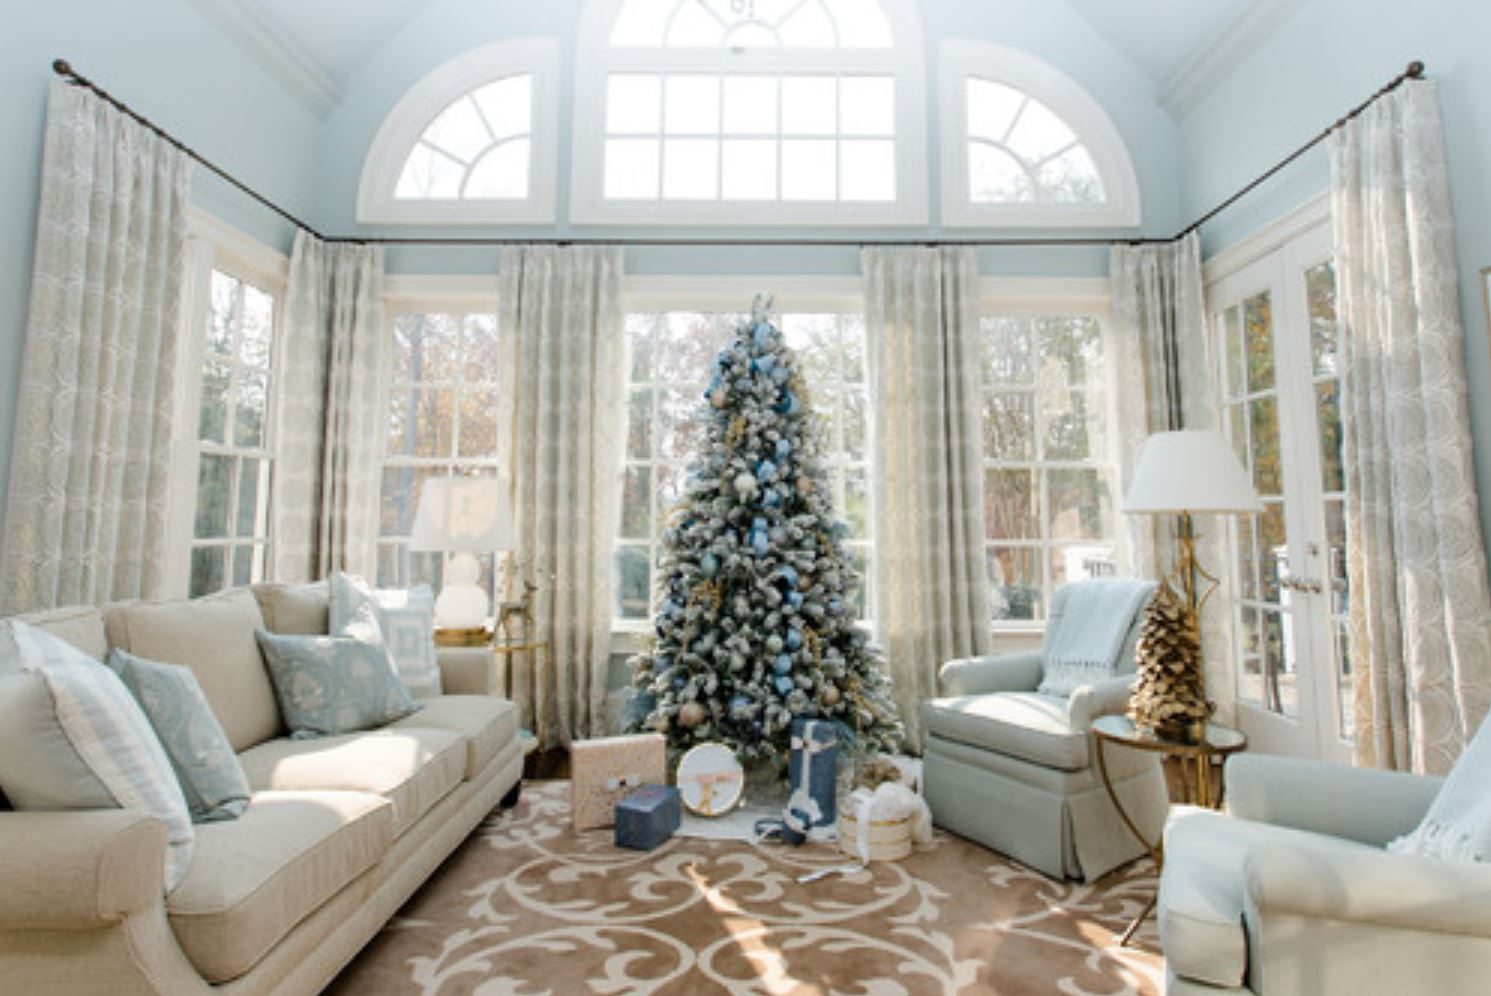 Realtor Magazine 2020 12 14 - 1 of 5 decorating trends this Christmas since the begining of the plandemic after going through the COVID-19 Coronavirus pandemic Hoey Team exp Realty